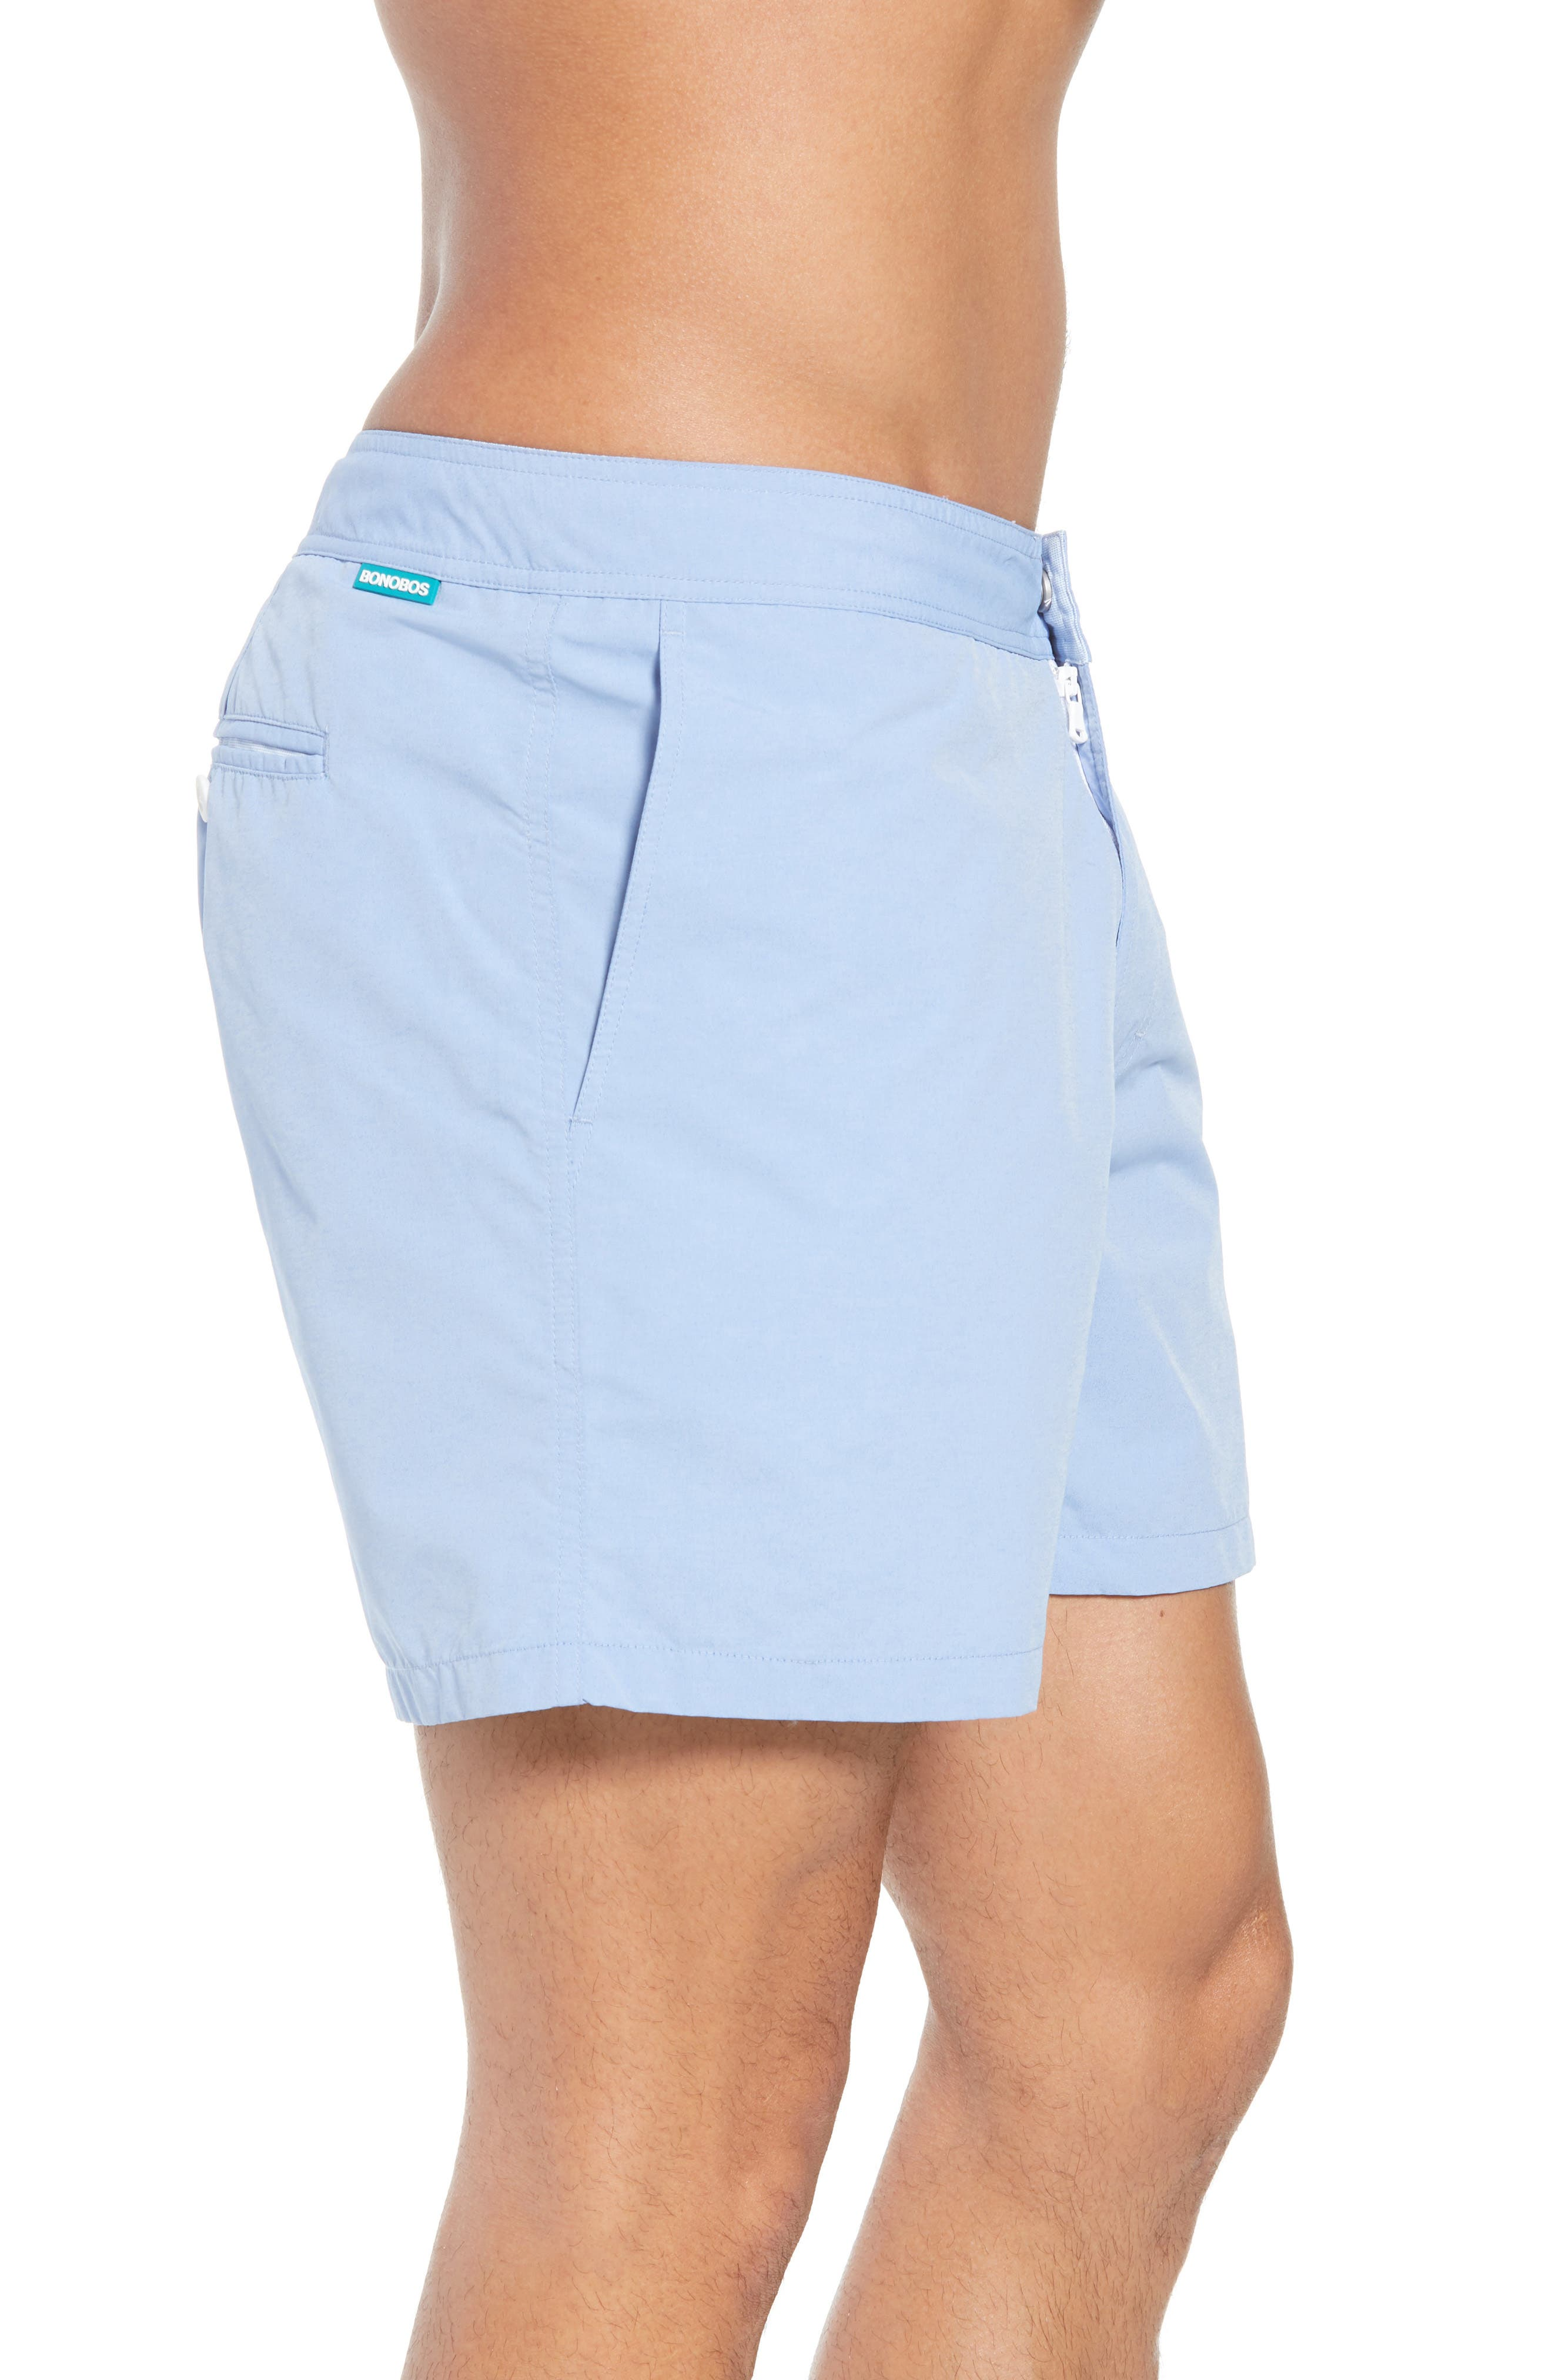 Solid 5-Inch Swim Trunks,                             Alternate thumbnail 3, color,